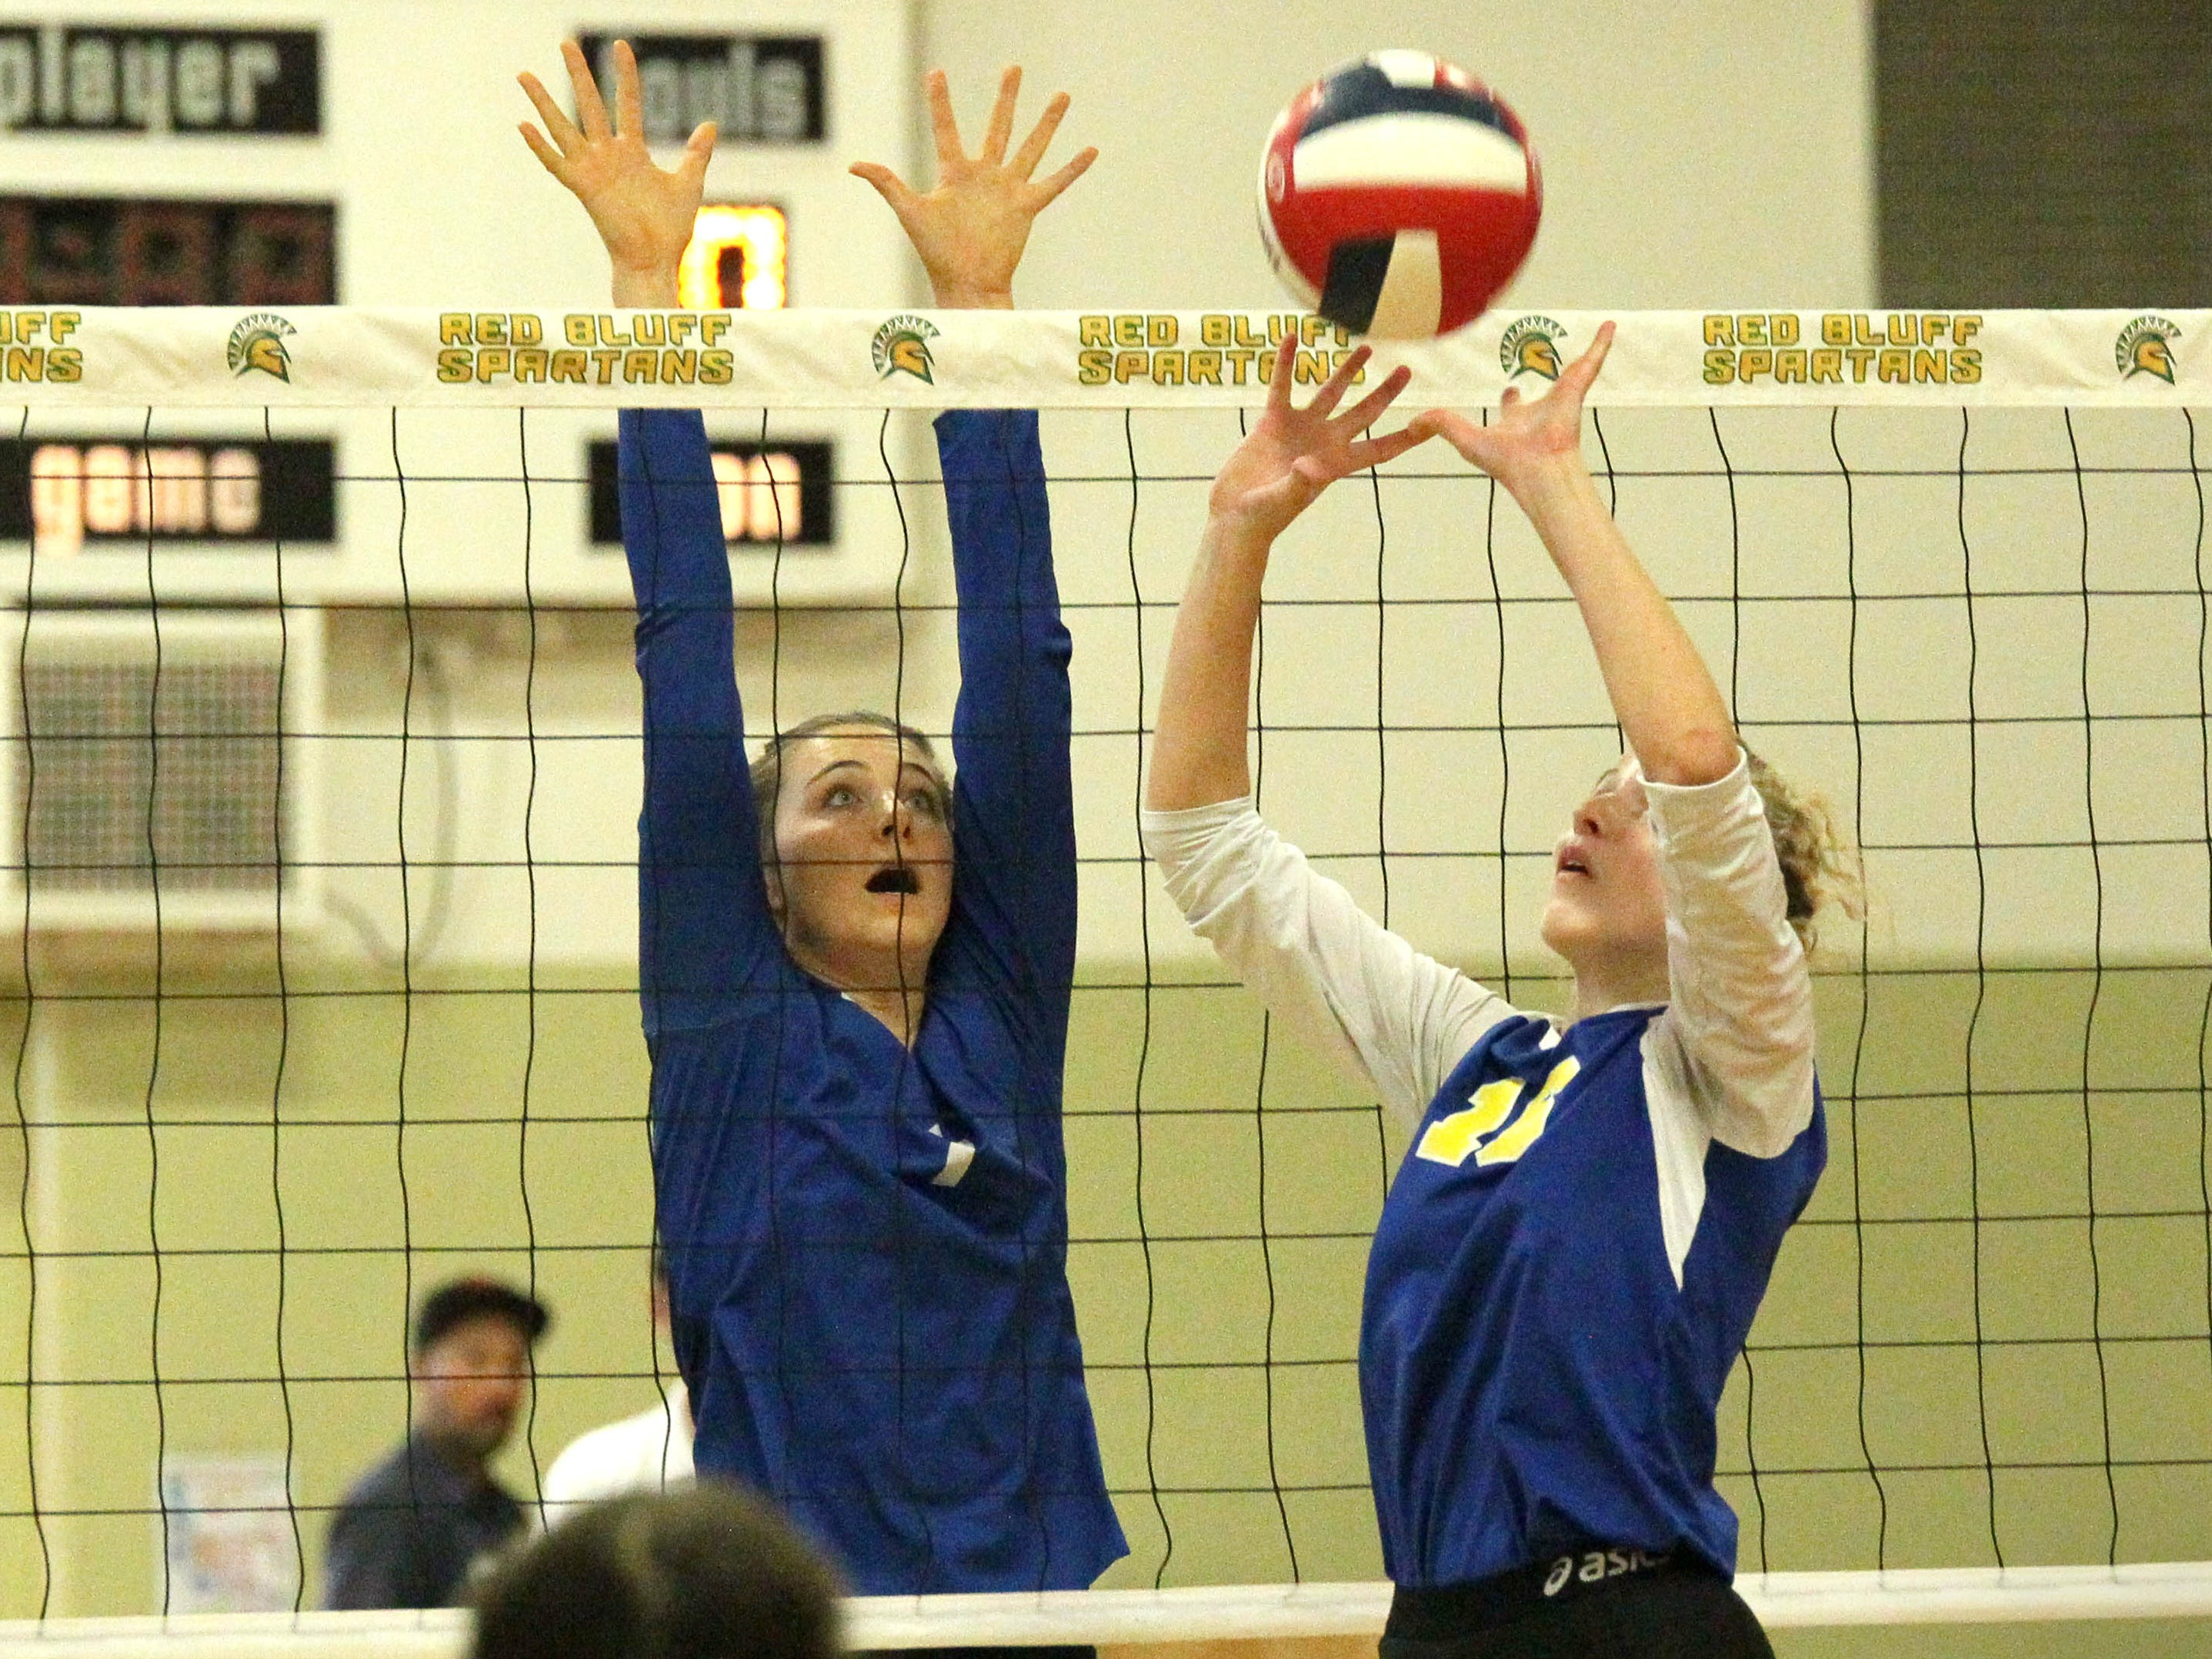 A Pierce player sets the ball during the Division IV Northern Section volleyball championship on Saturday, Nov. 3. Pierce won the match in three sets over U-Prep, 25-23, 25-21, 25-22.